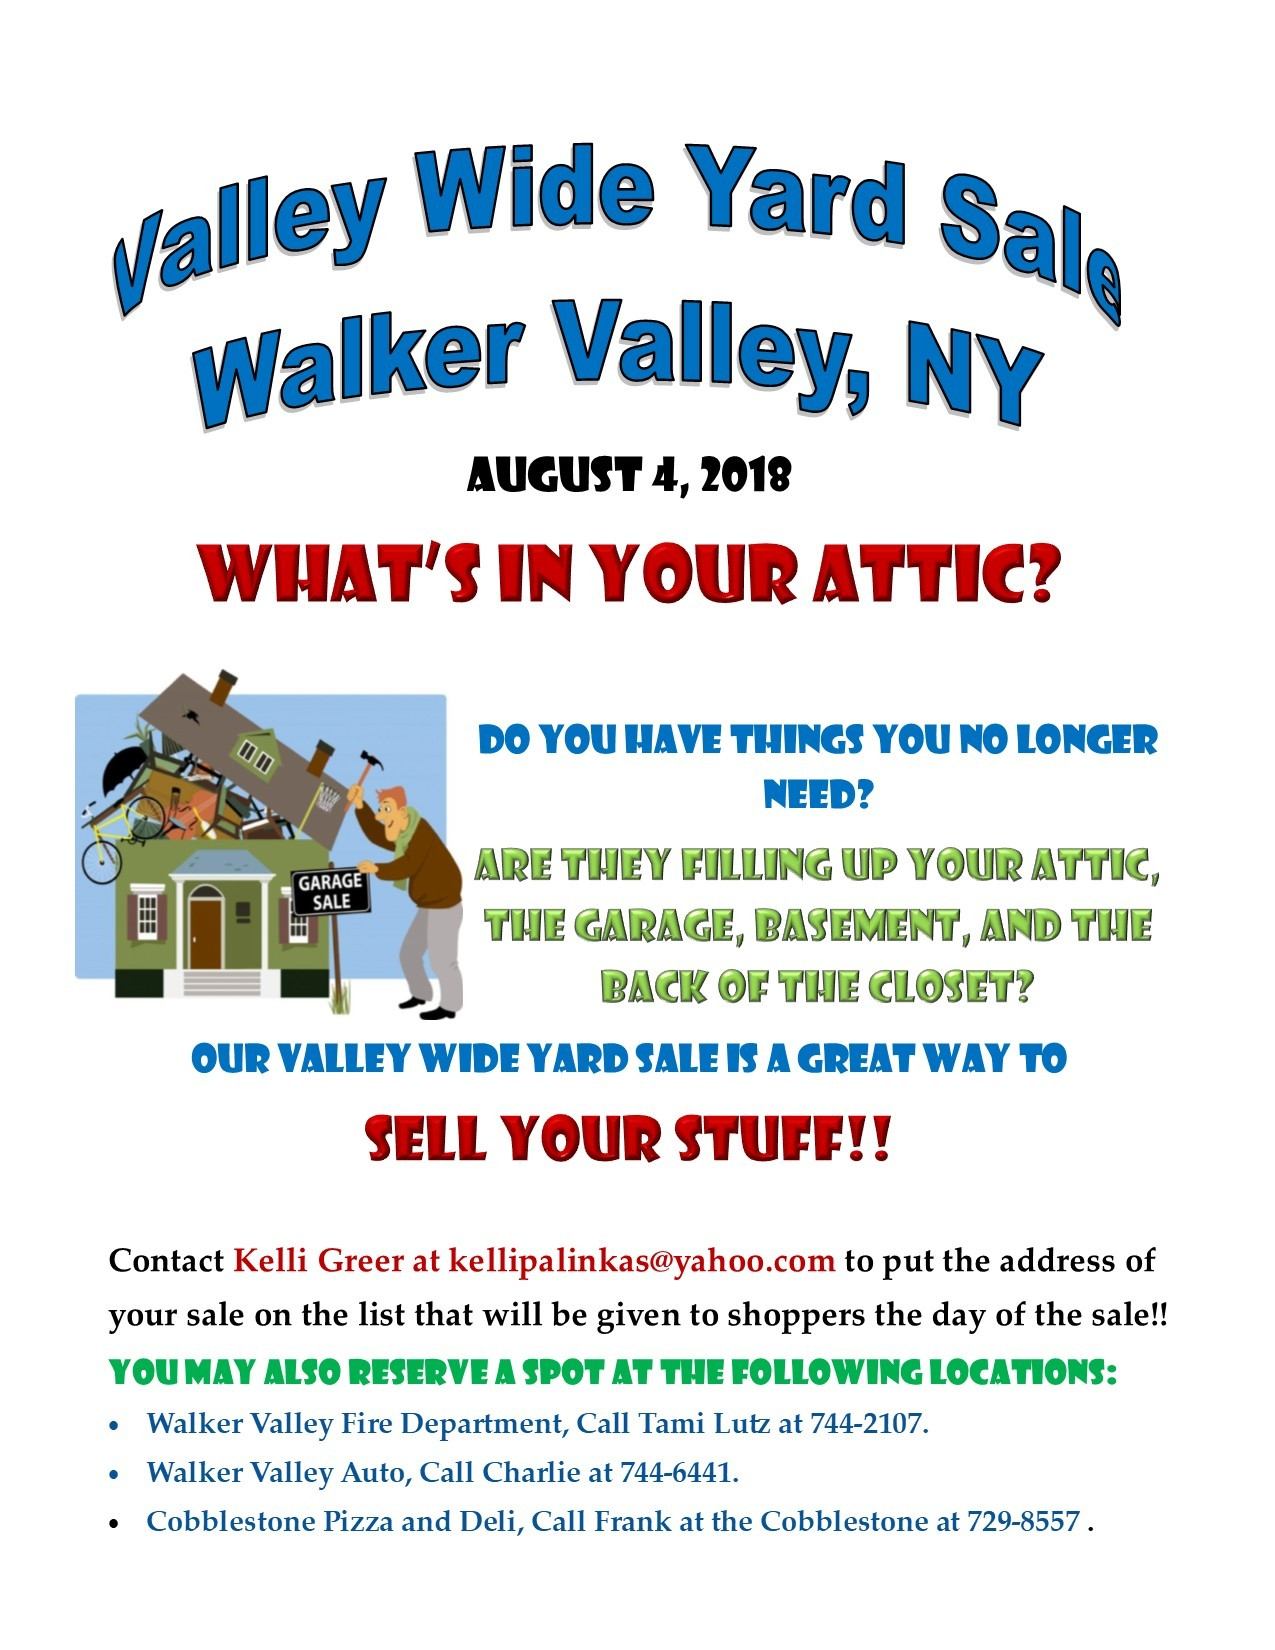 Valley Wide Yard Sale | Walker Valley Fire Co. | Outdoors u0026 Recreation | Hudson Valley; Chronogram  sc 1 st  Chronogram Magazine & Valley Wide Yard Sale | Walker Valley Fire Co. | Outdoors ...